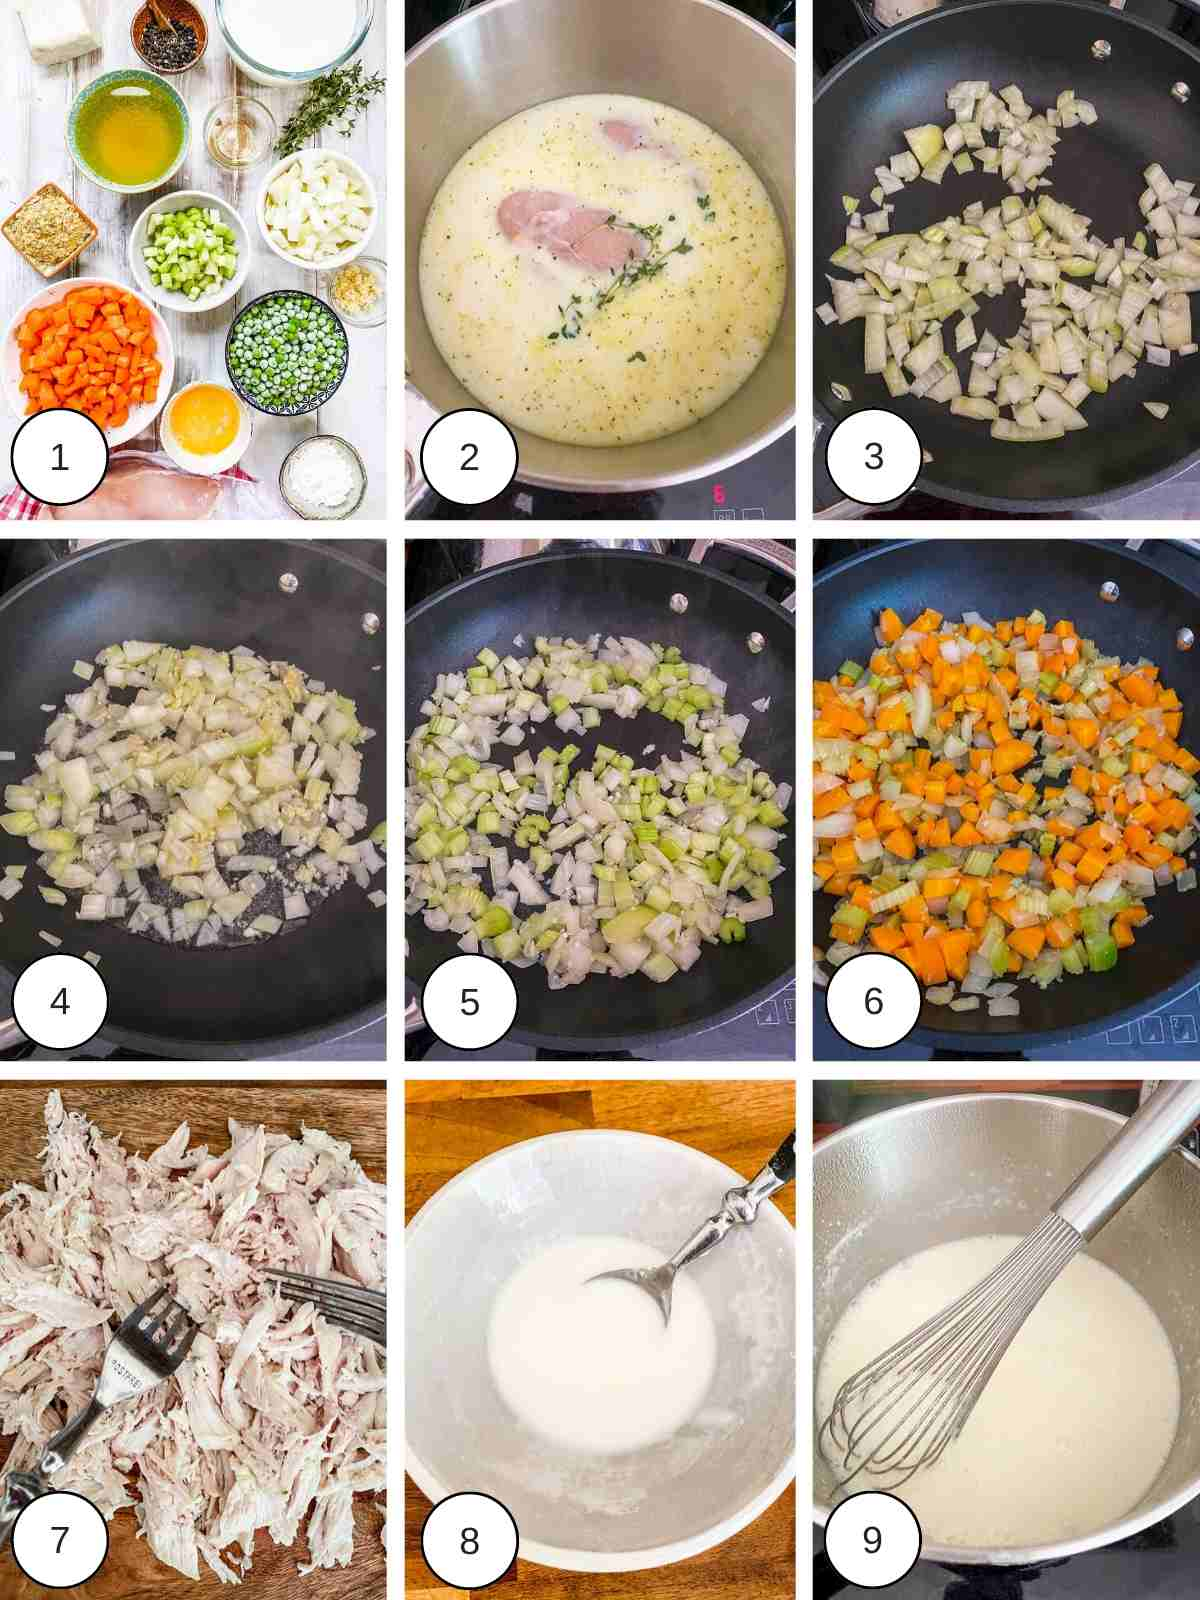 9 pictures showing the process of making WW chicken Pot pie.